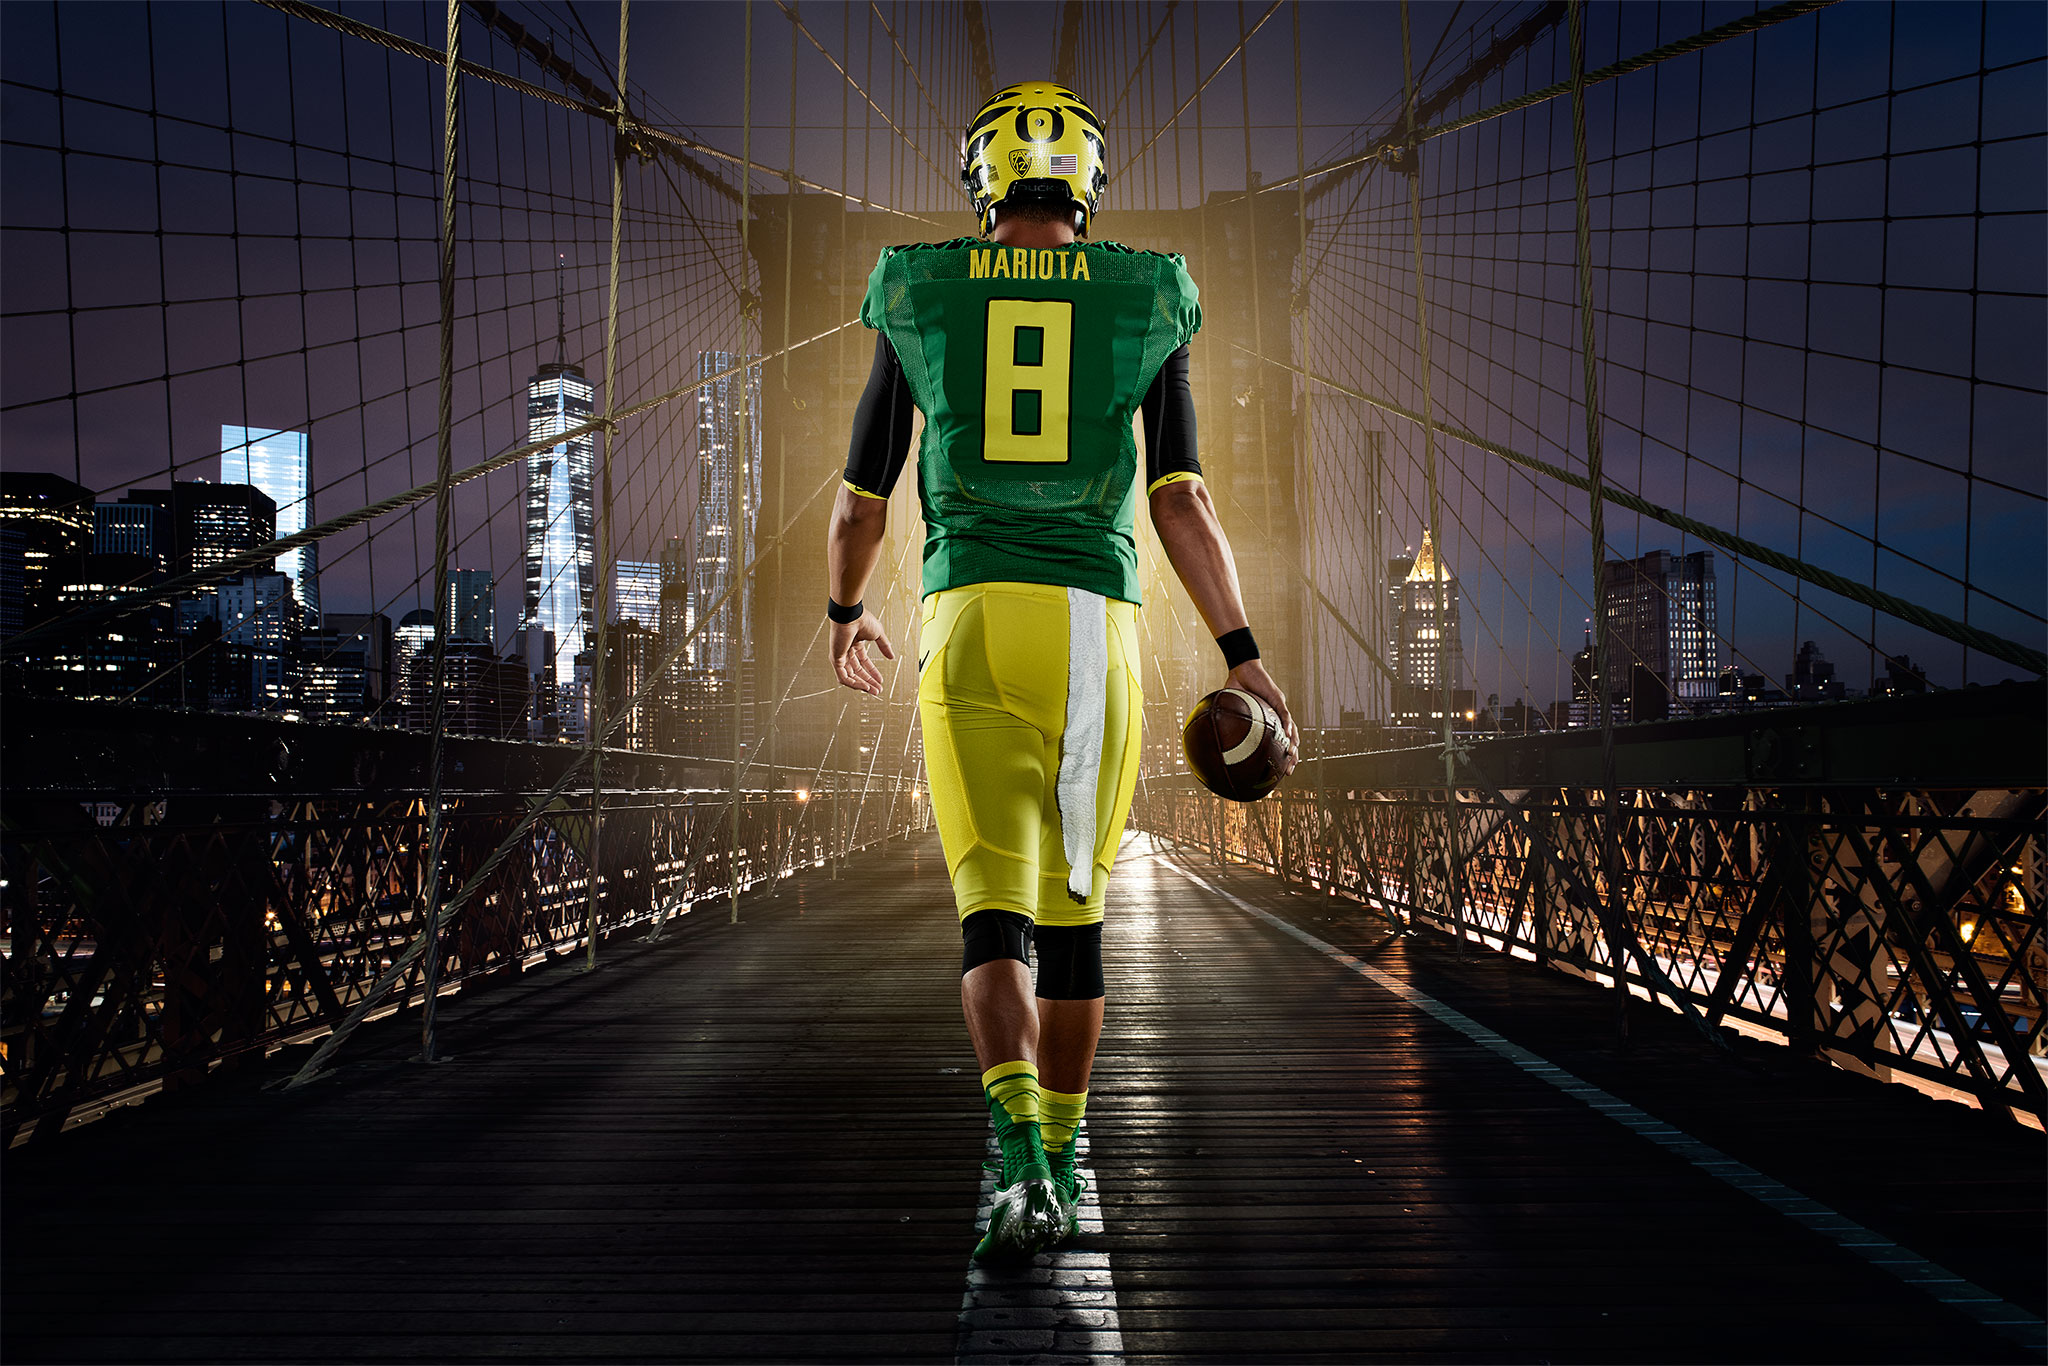 Marcus Mariota Arrives in NYC | Zach Ancell Photography